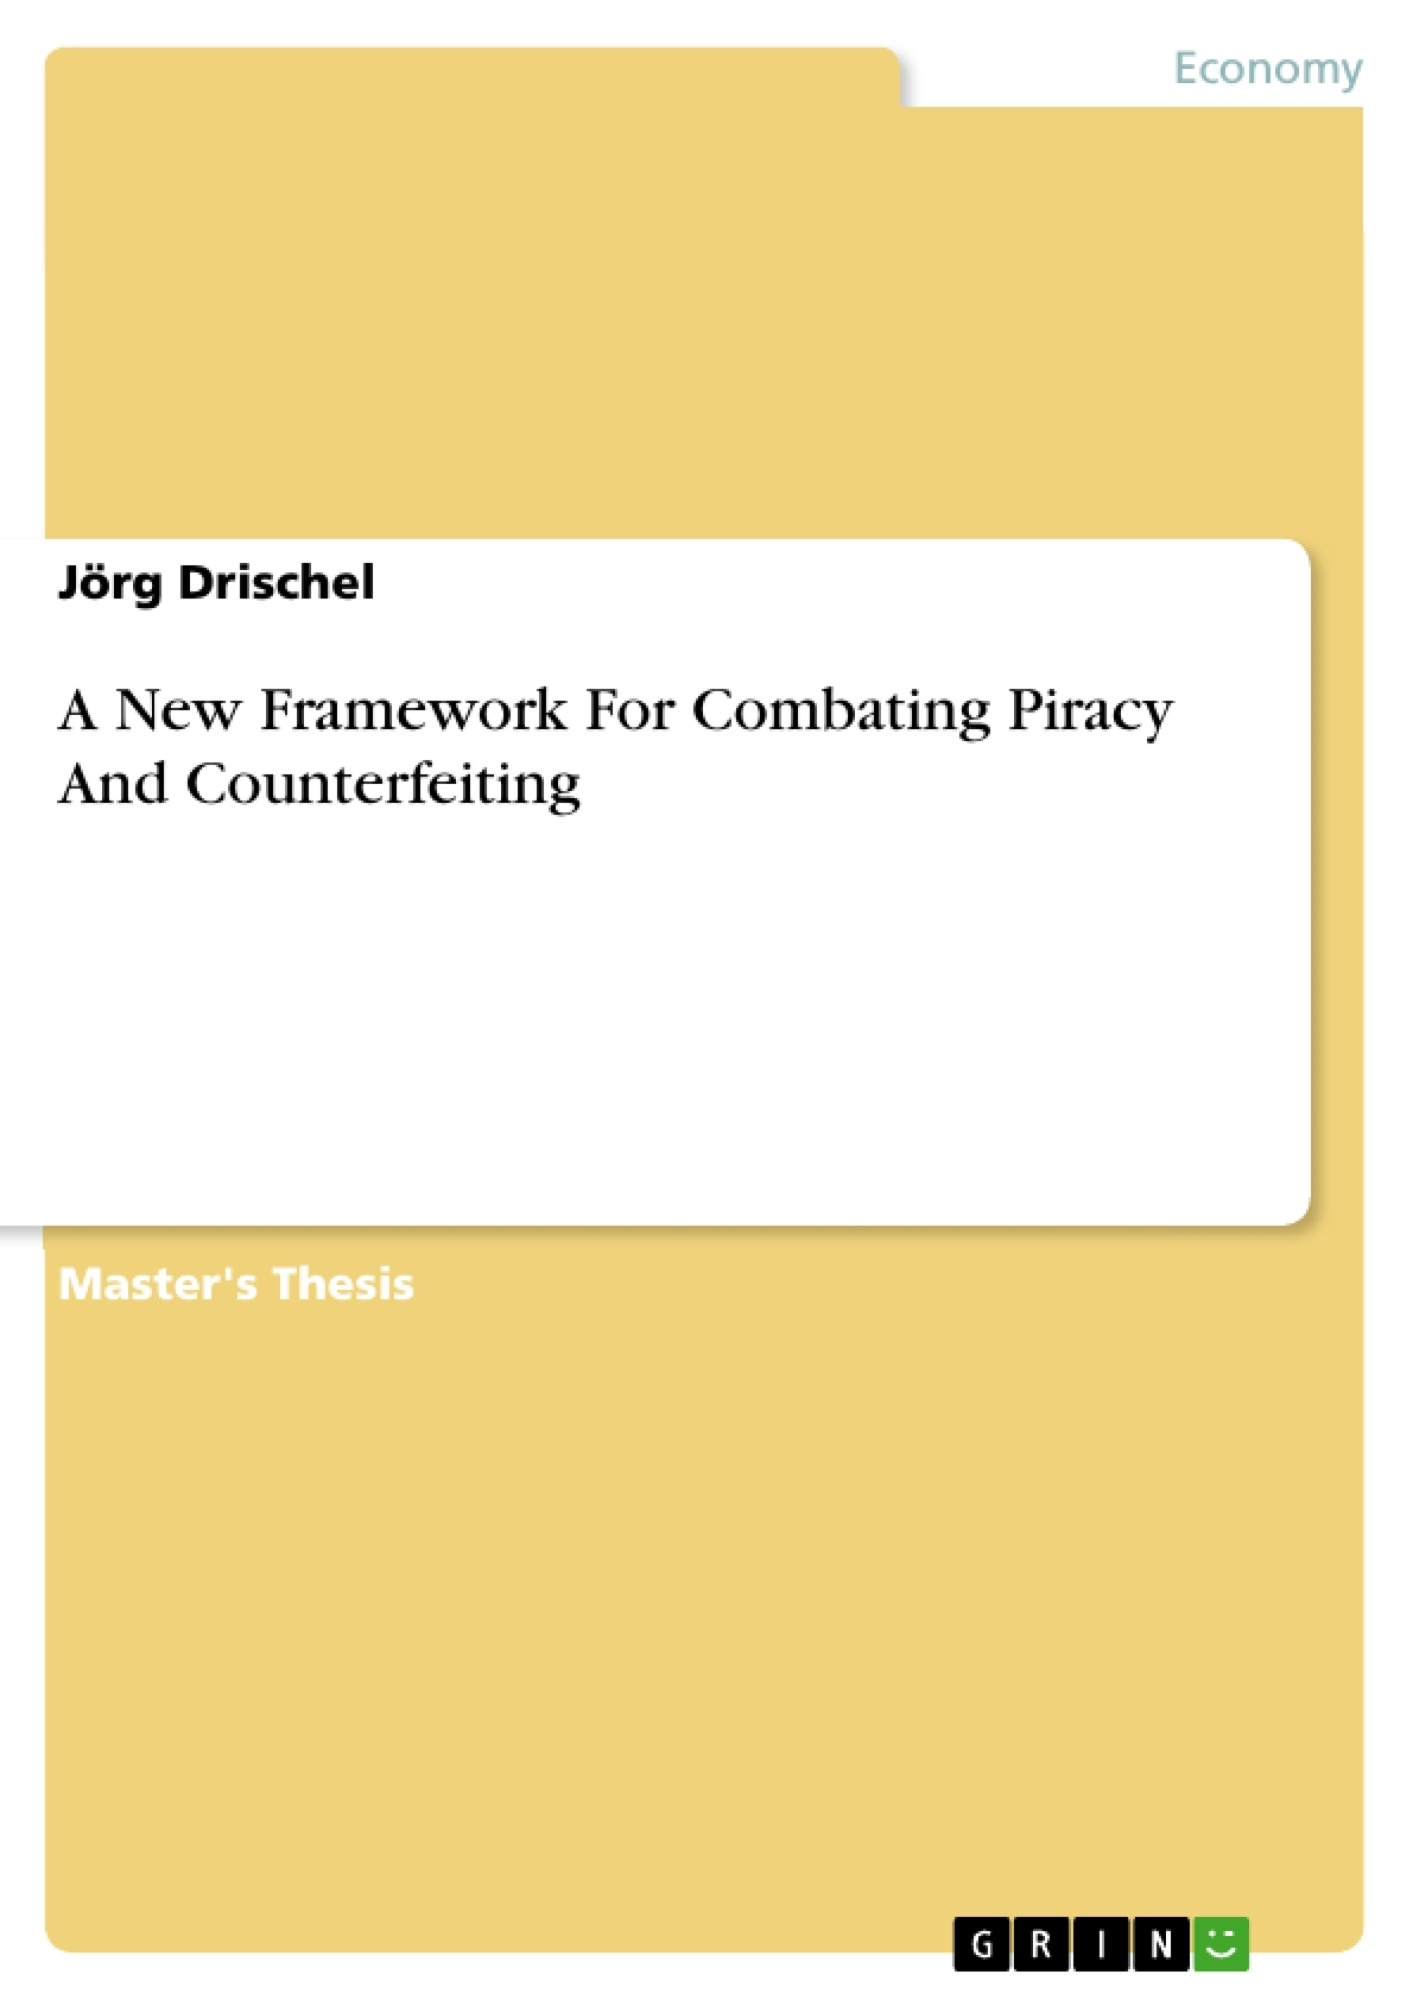 Title: A New Framework For Combating Piracy And Counterfeiting